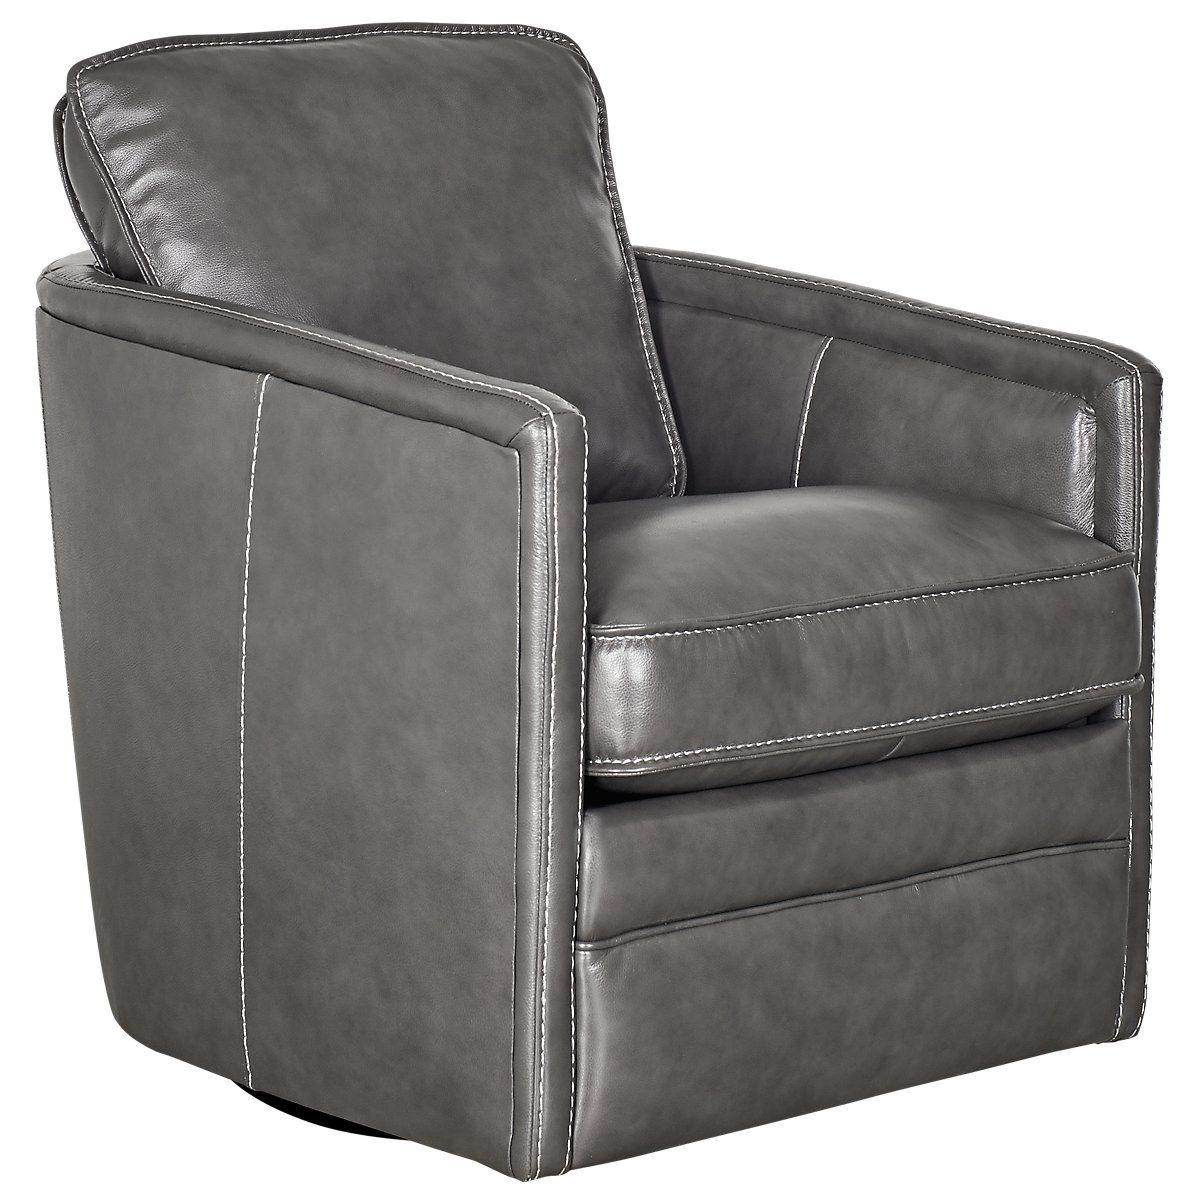 Alexander Gray Leather Swivel Chair (With images